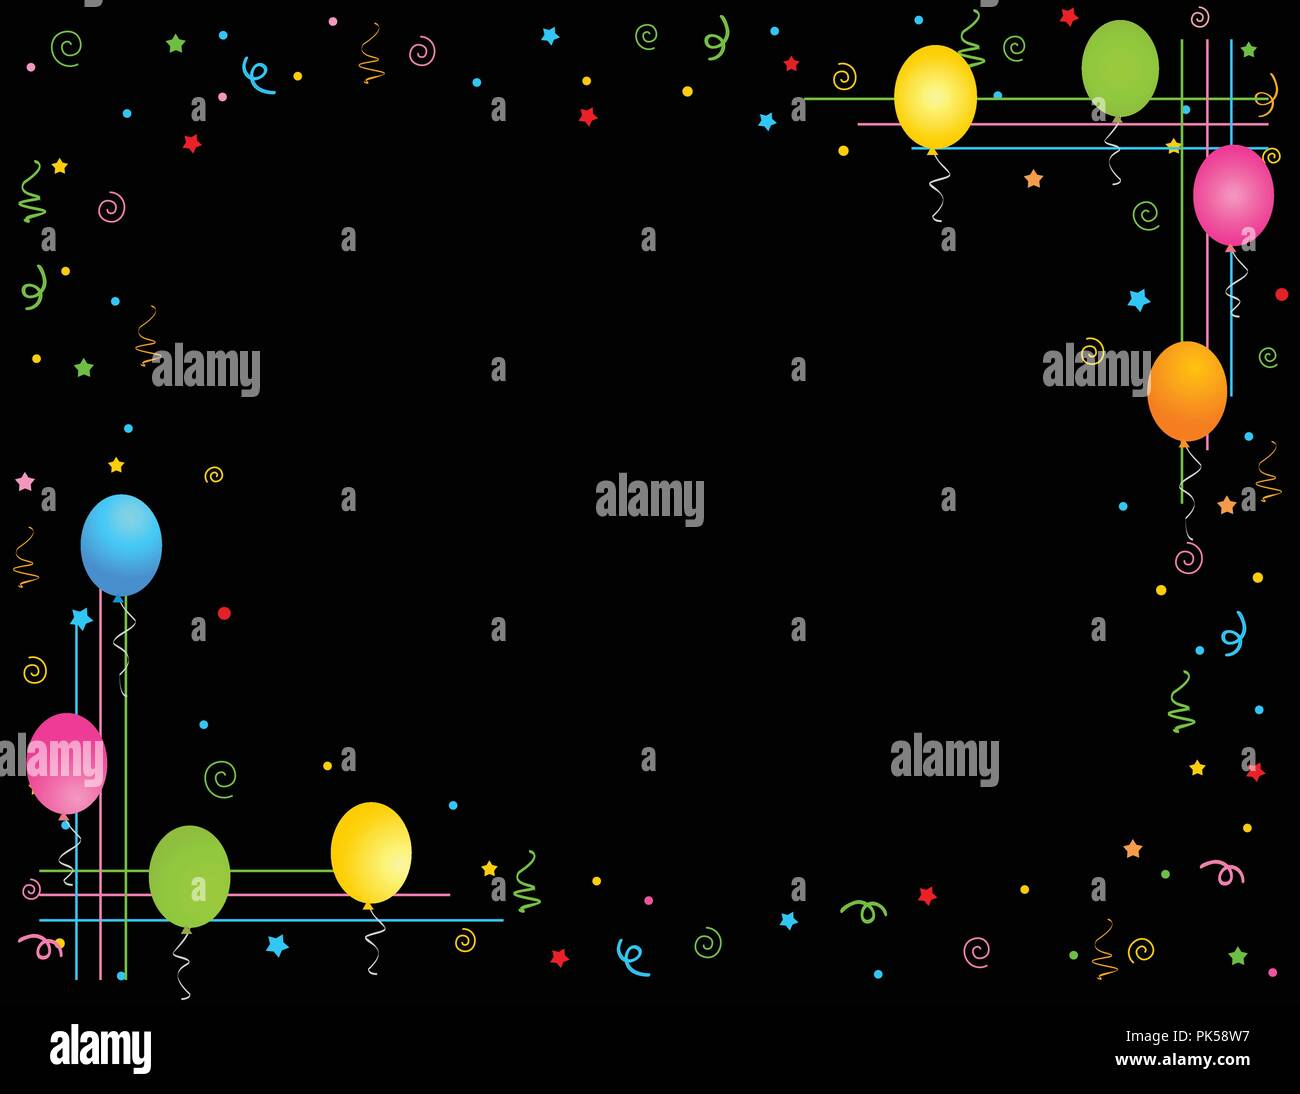 Colorful balloons isolated on black background illustration colorful balloons isolated on black background illustration greeting card invitation border and frame m4hsunfo